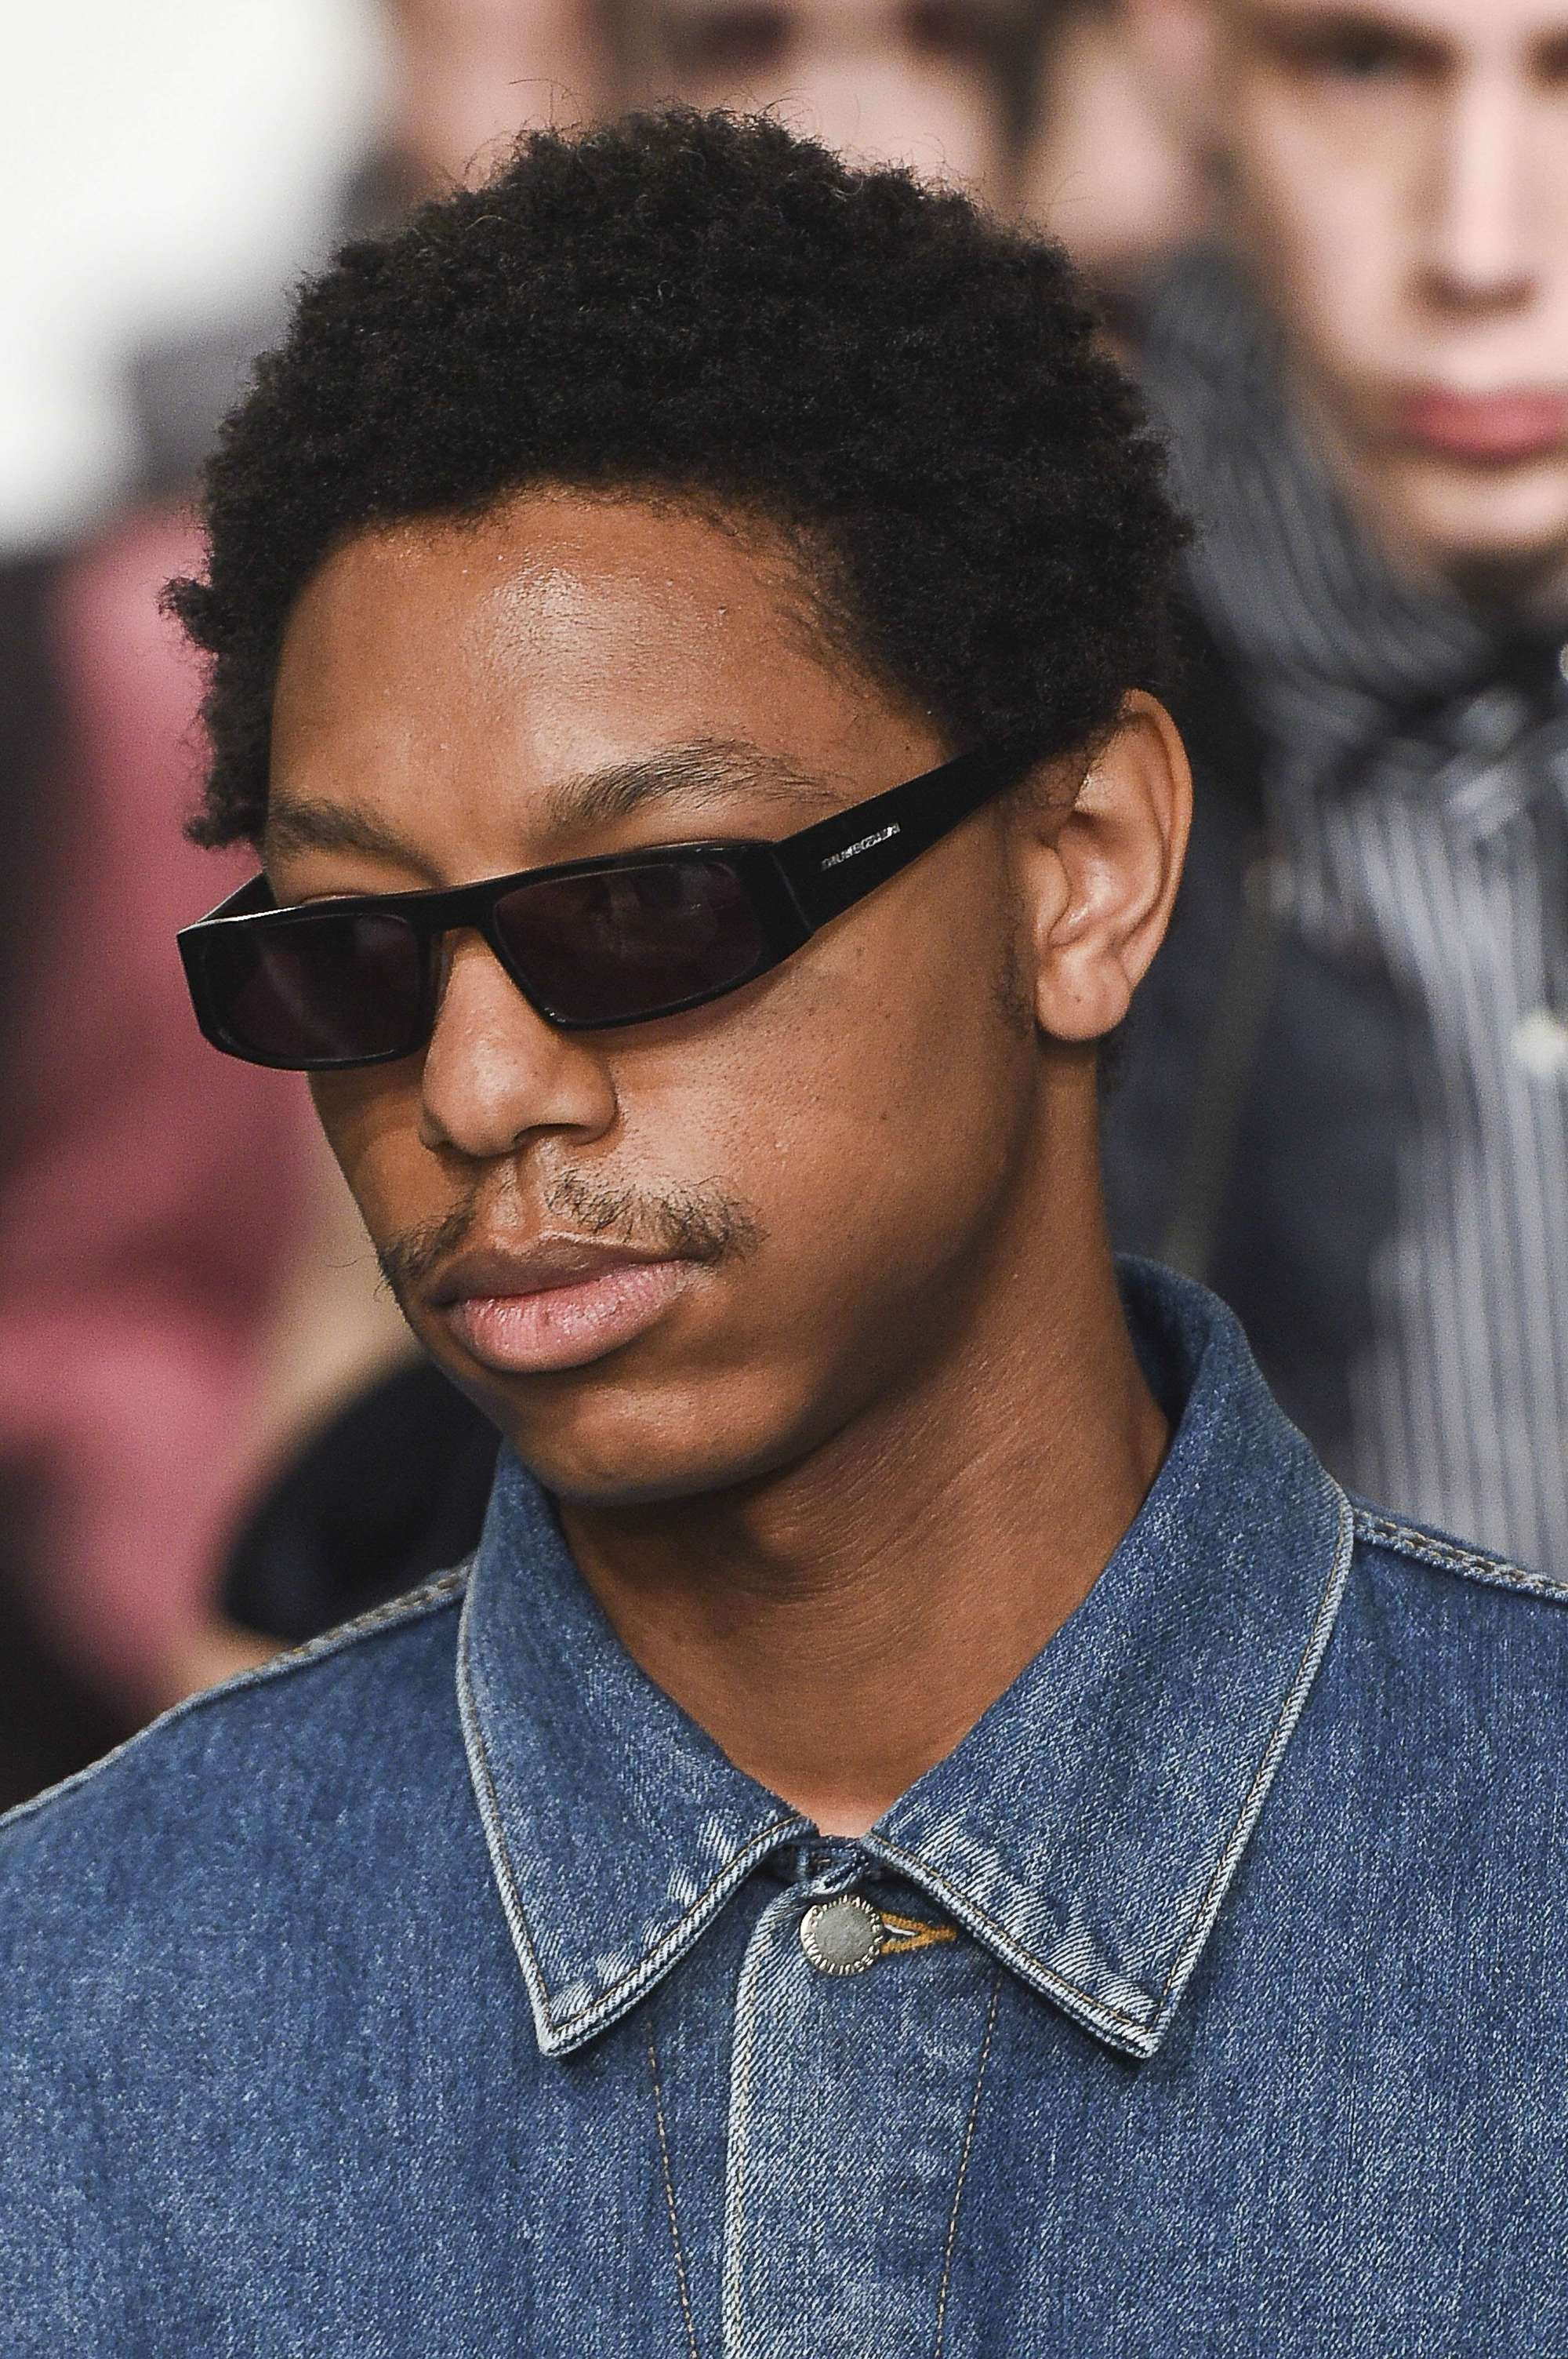 close up shot of black man with a short afro hairstyle, wearing glasses and denim shirt